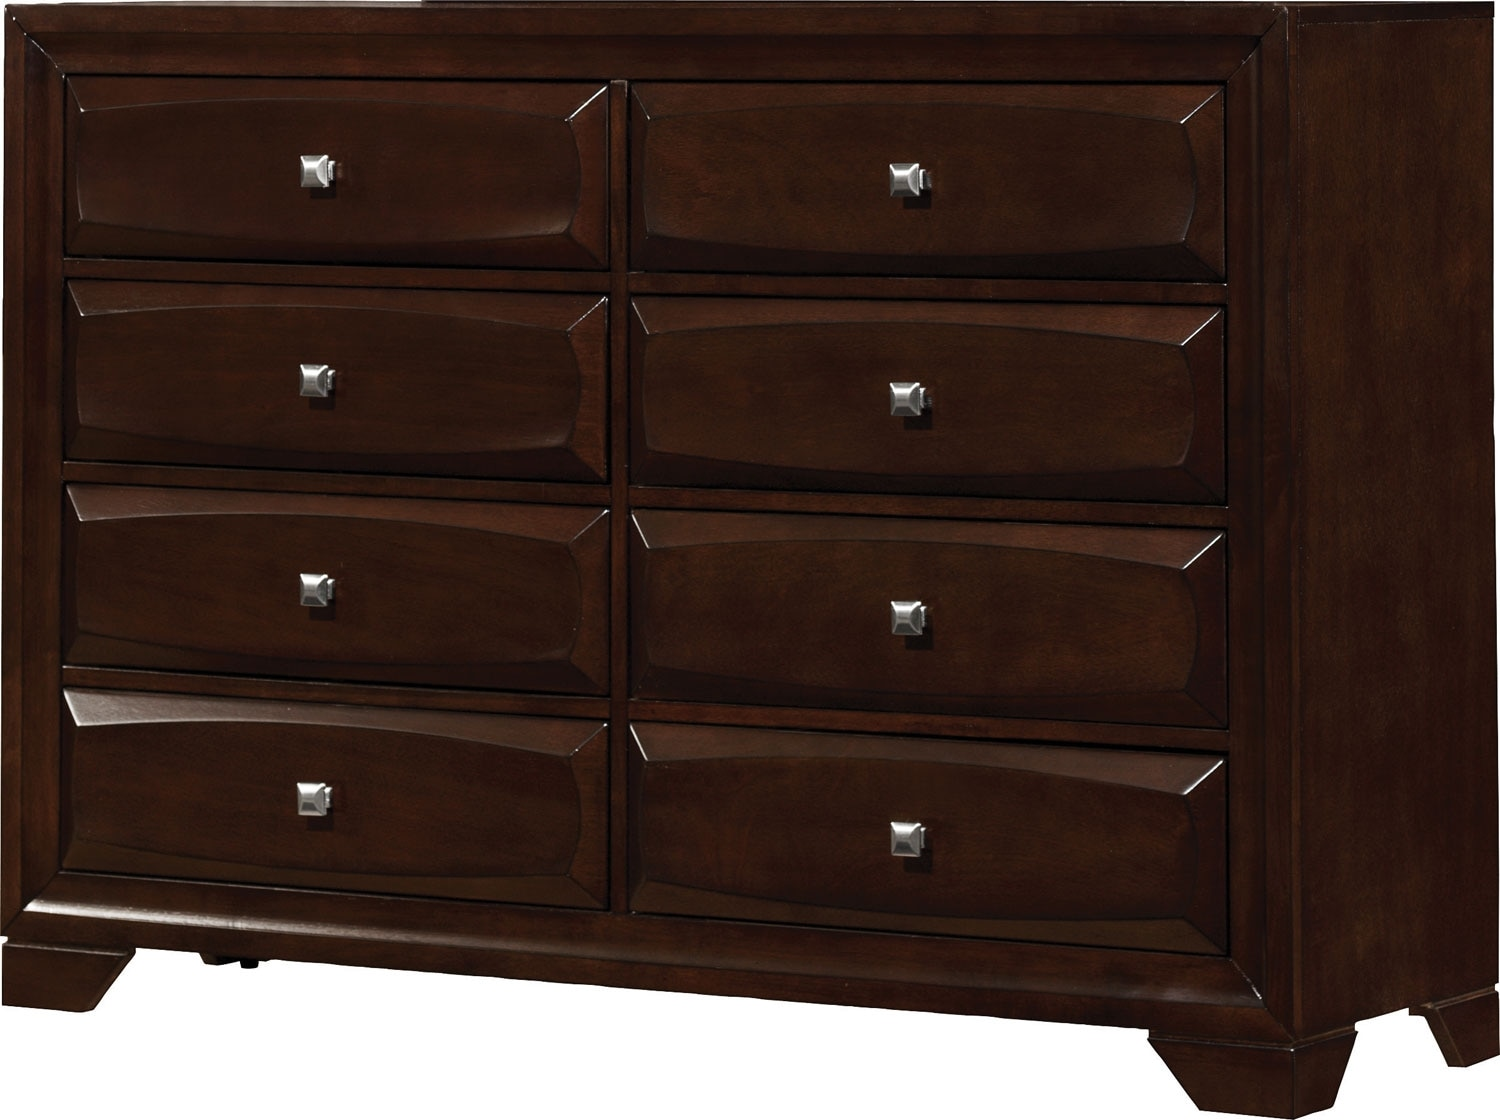 Jaxon dresser united furniture warehouse for Bedroom dressers